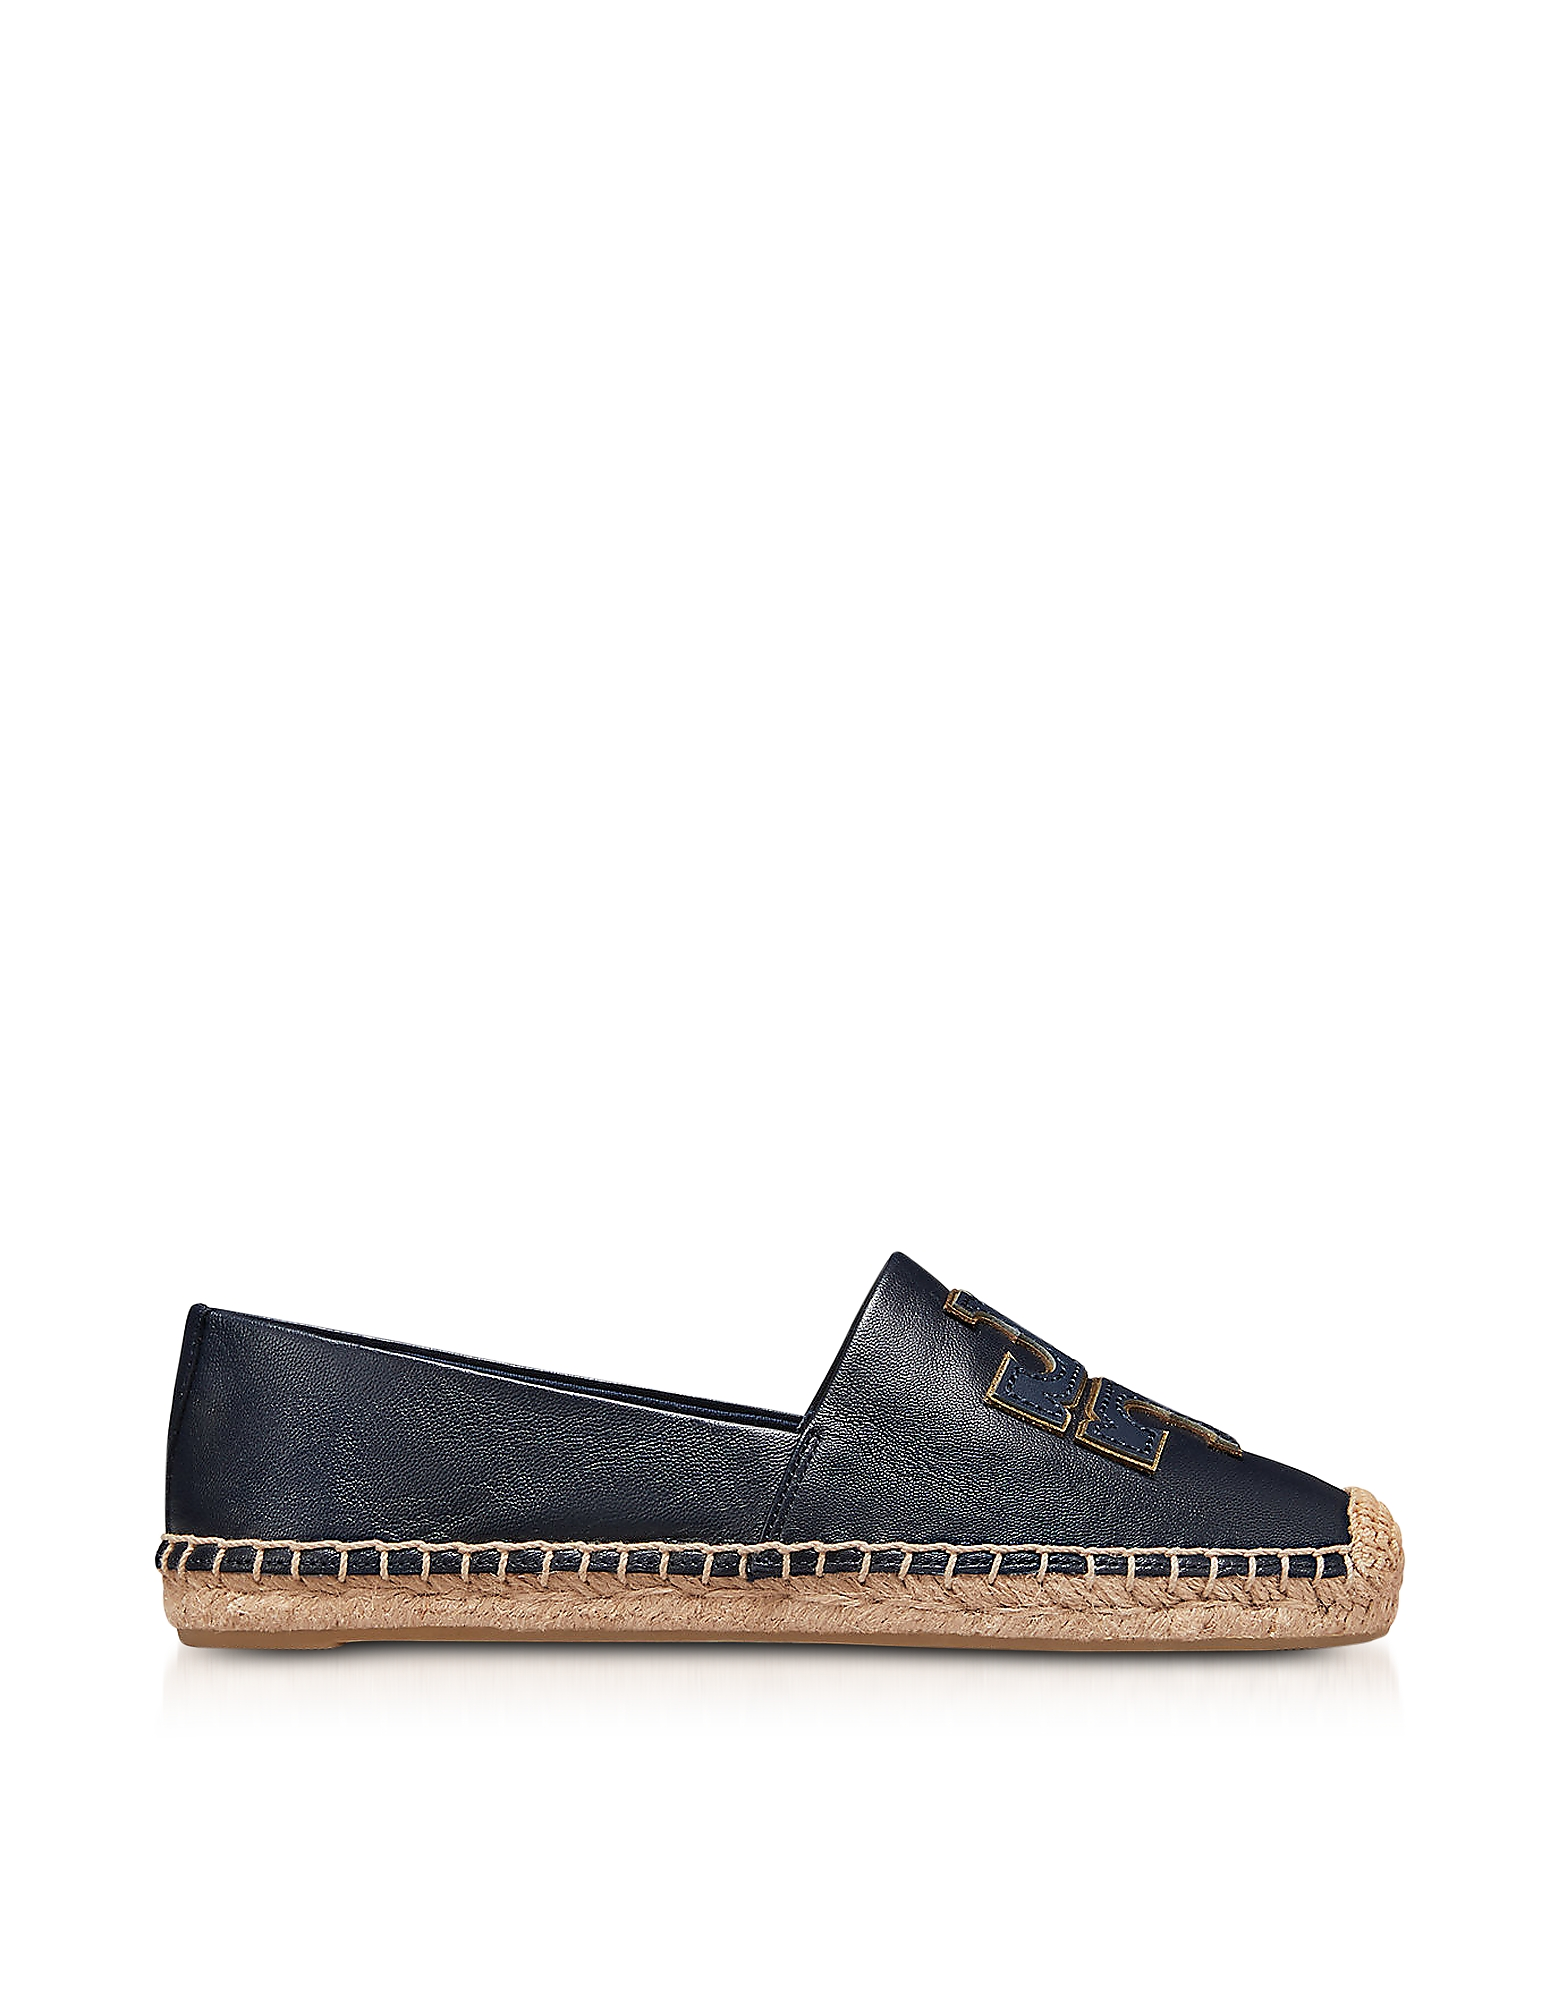 Tory Burch Shoes, Perfect Navy Ines Espadrilles